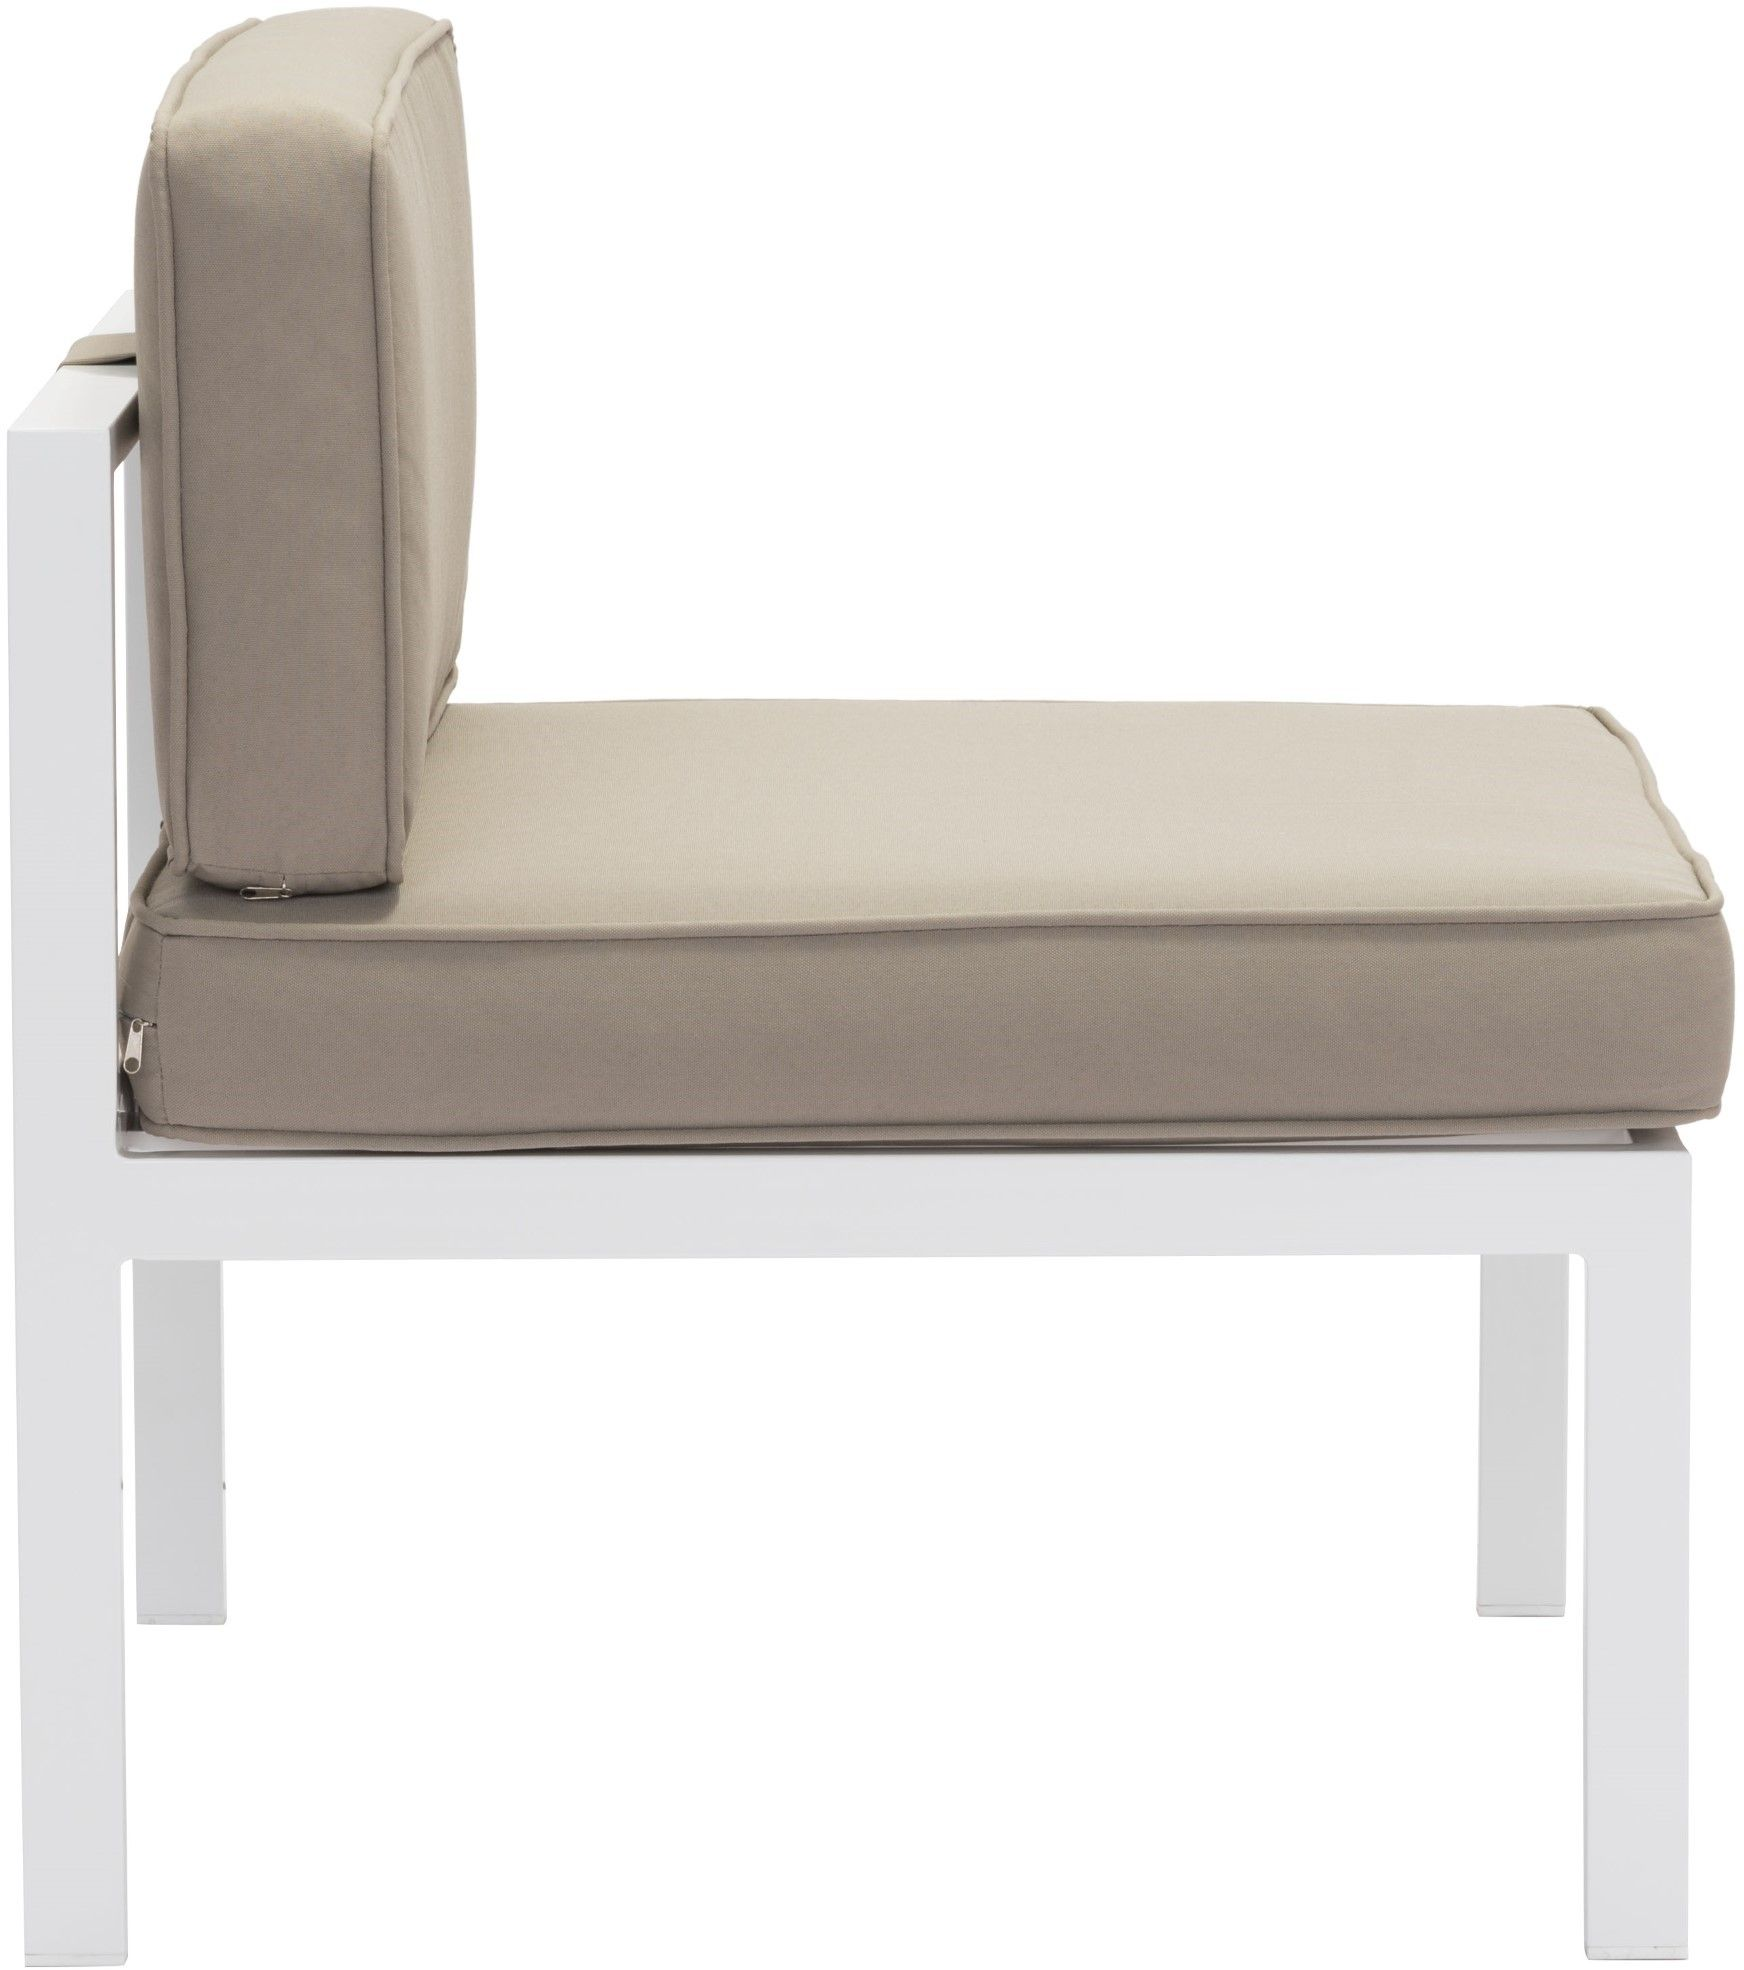 taupe dining chairs canada strong back chair zuo vive outdoor golden beach middle (set of 2 - white & taupe) 703814 | modern ...